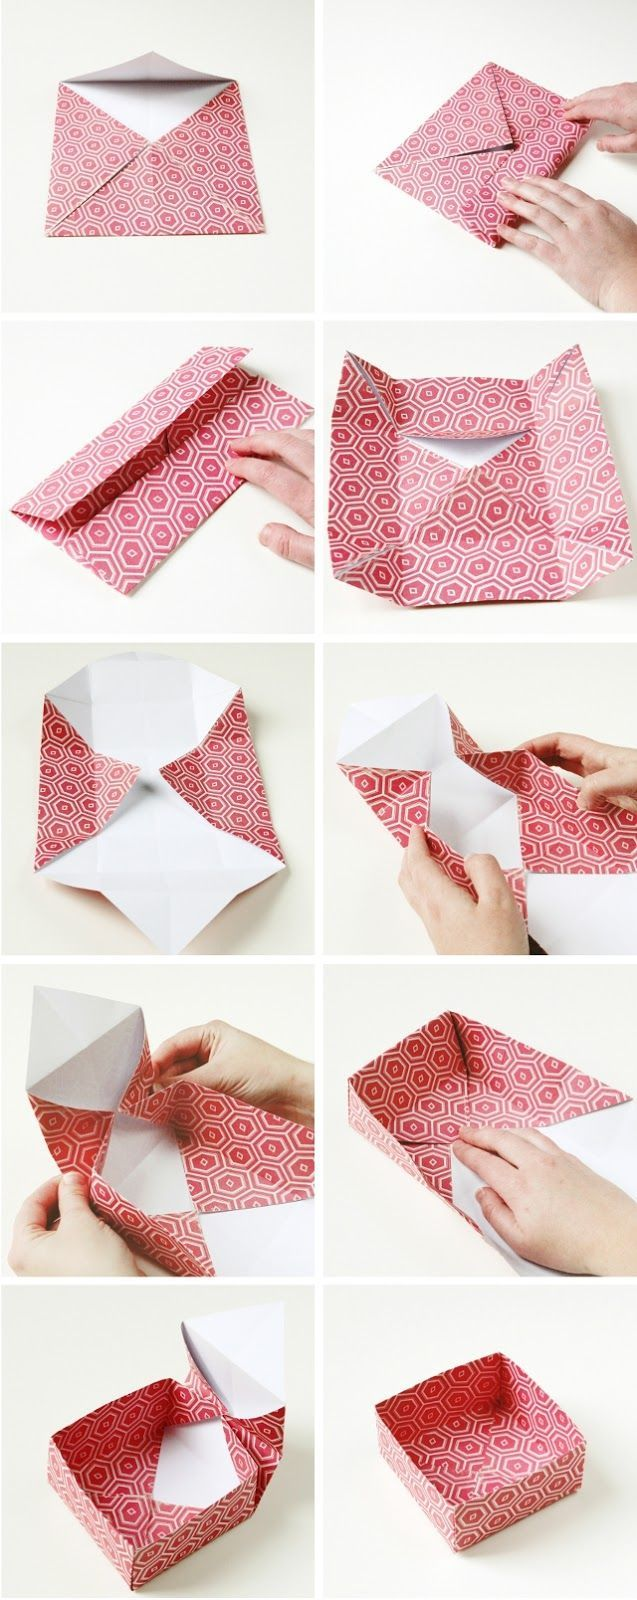 Gathering Beauty: Diy Origami Gift Boxes. | I used to make these in elementary school! I had a ton of them all piled up in my room without a use. I used to decorate them and hand them out as gifts.